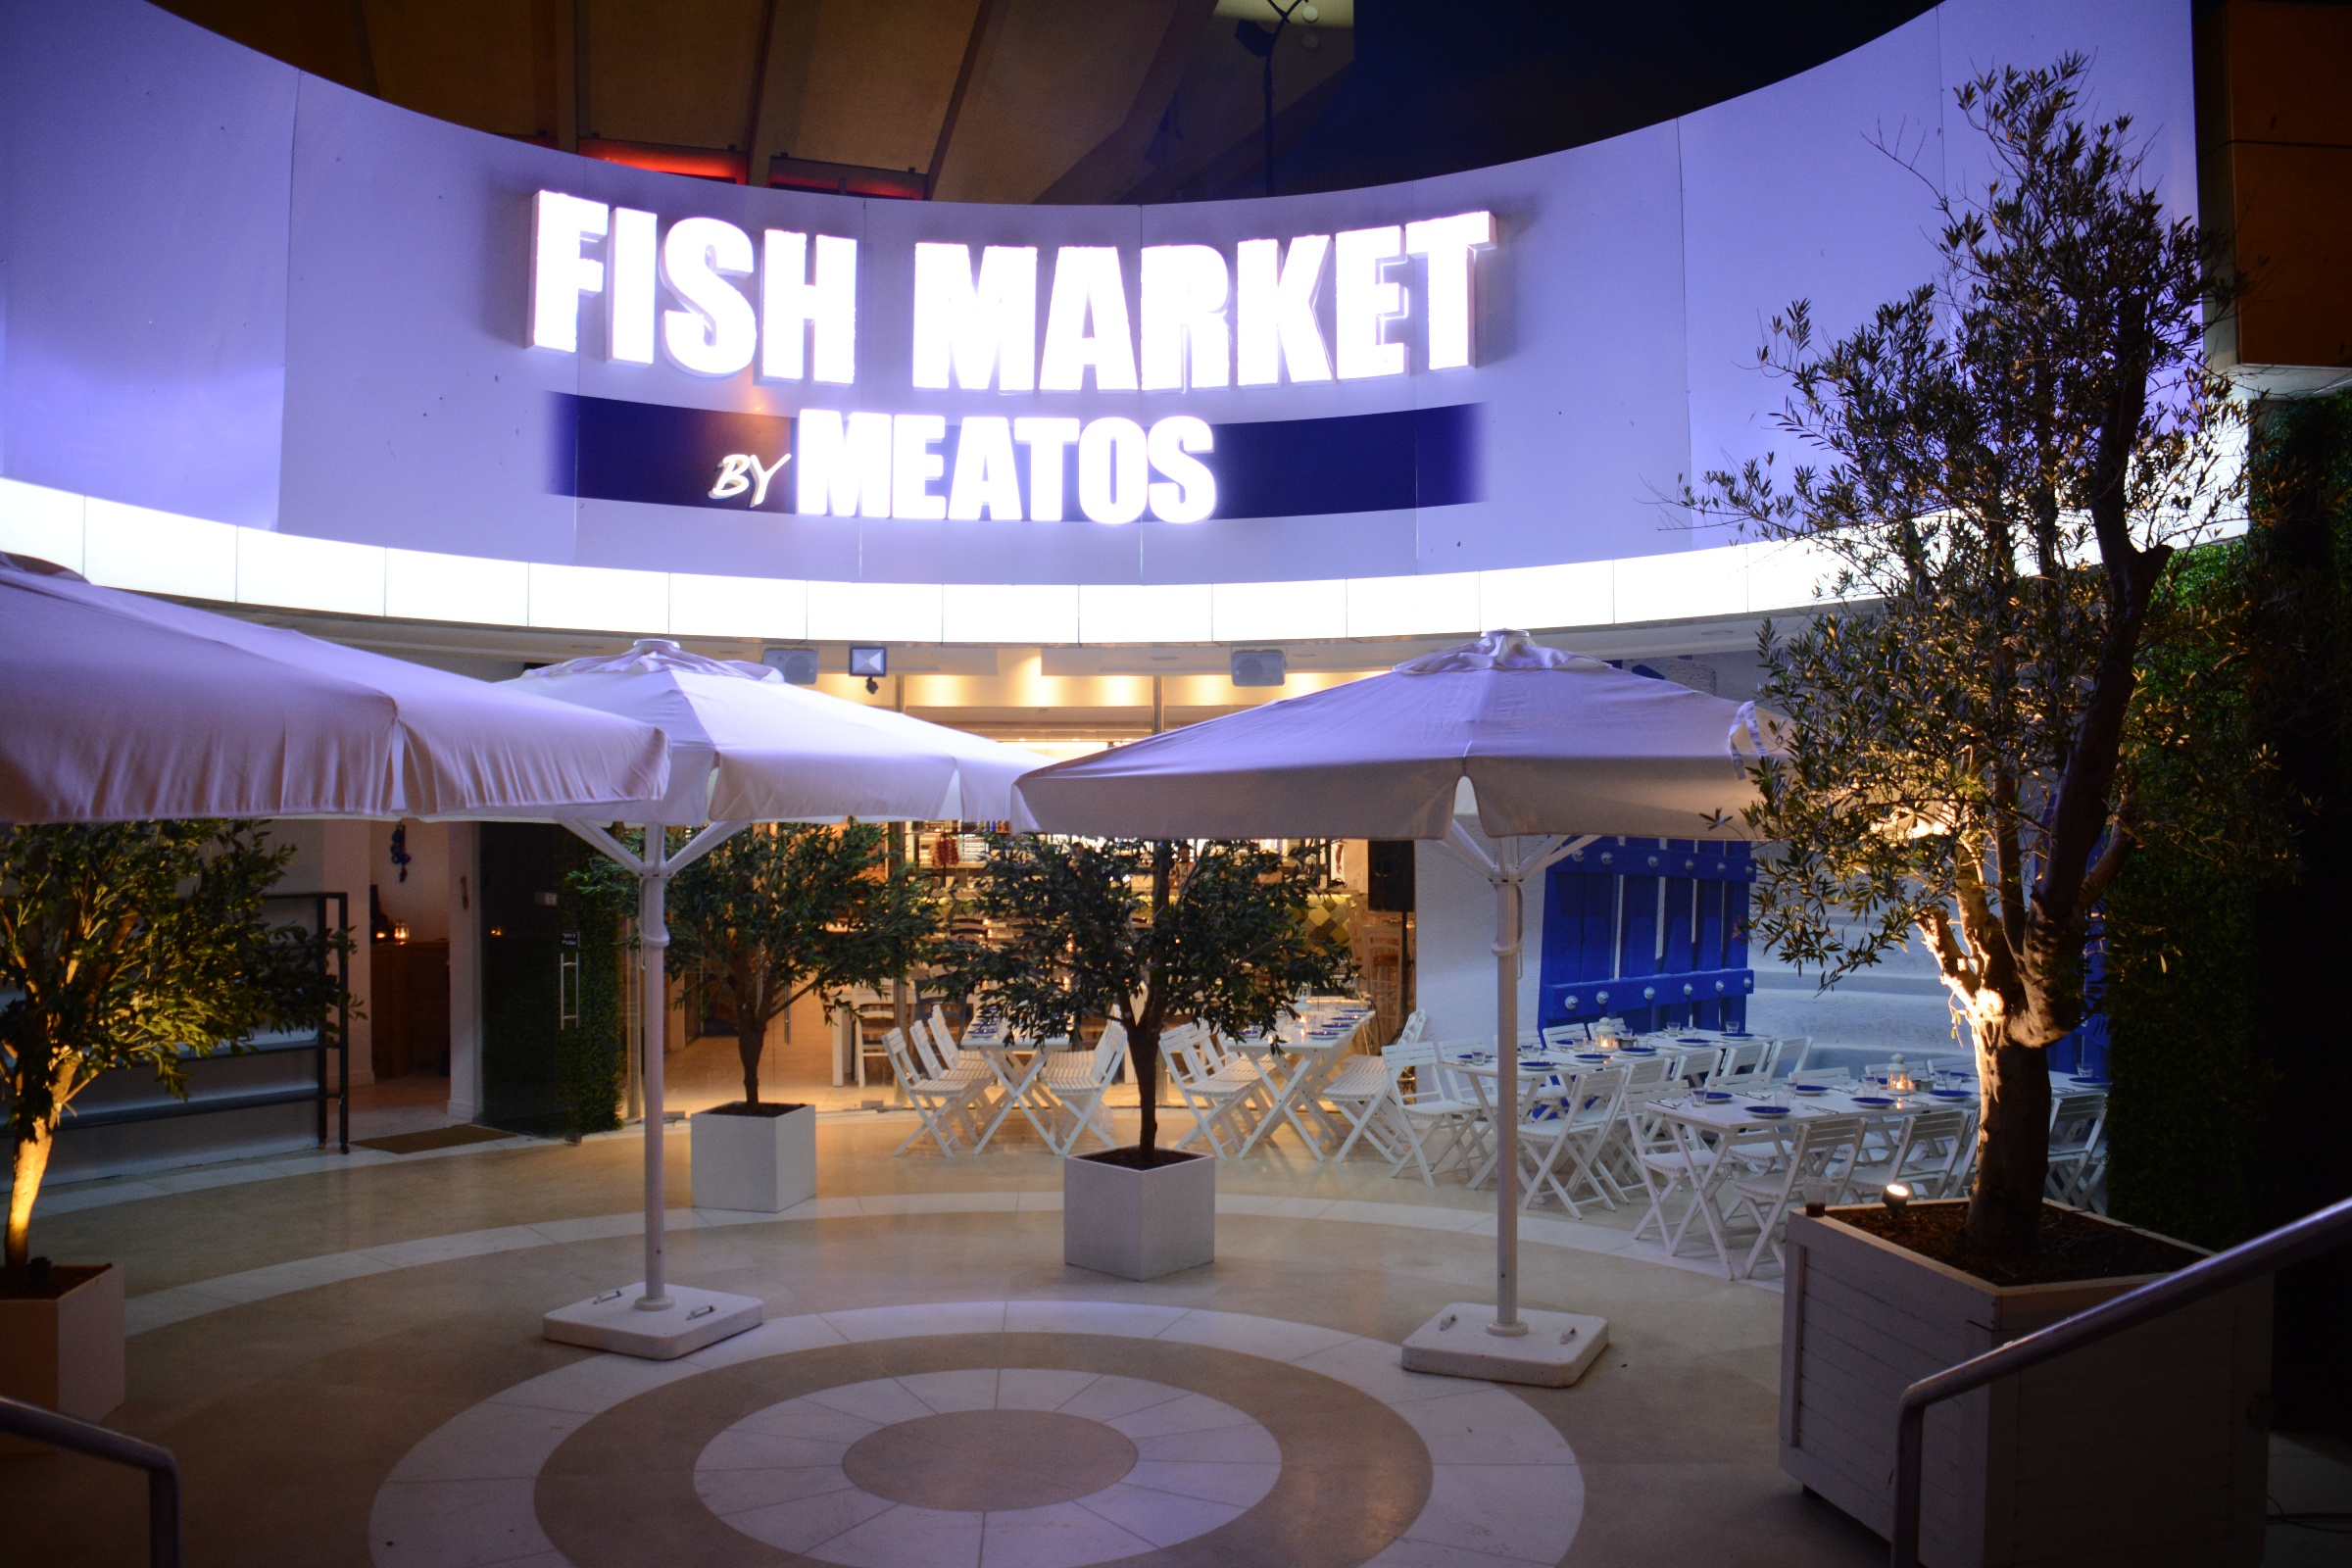 Fish market by meatos launches in tel aviv for Fish market restaurant nyc